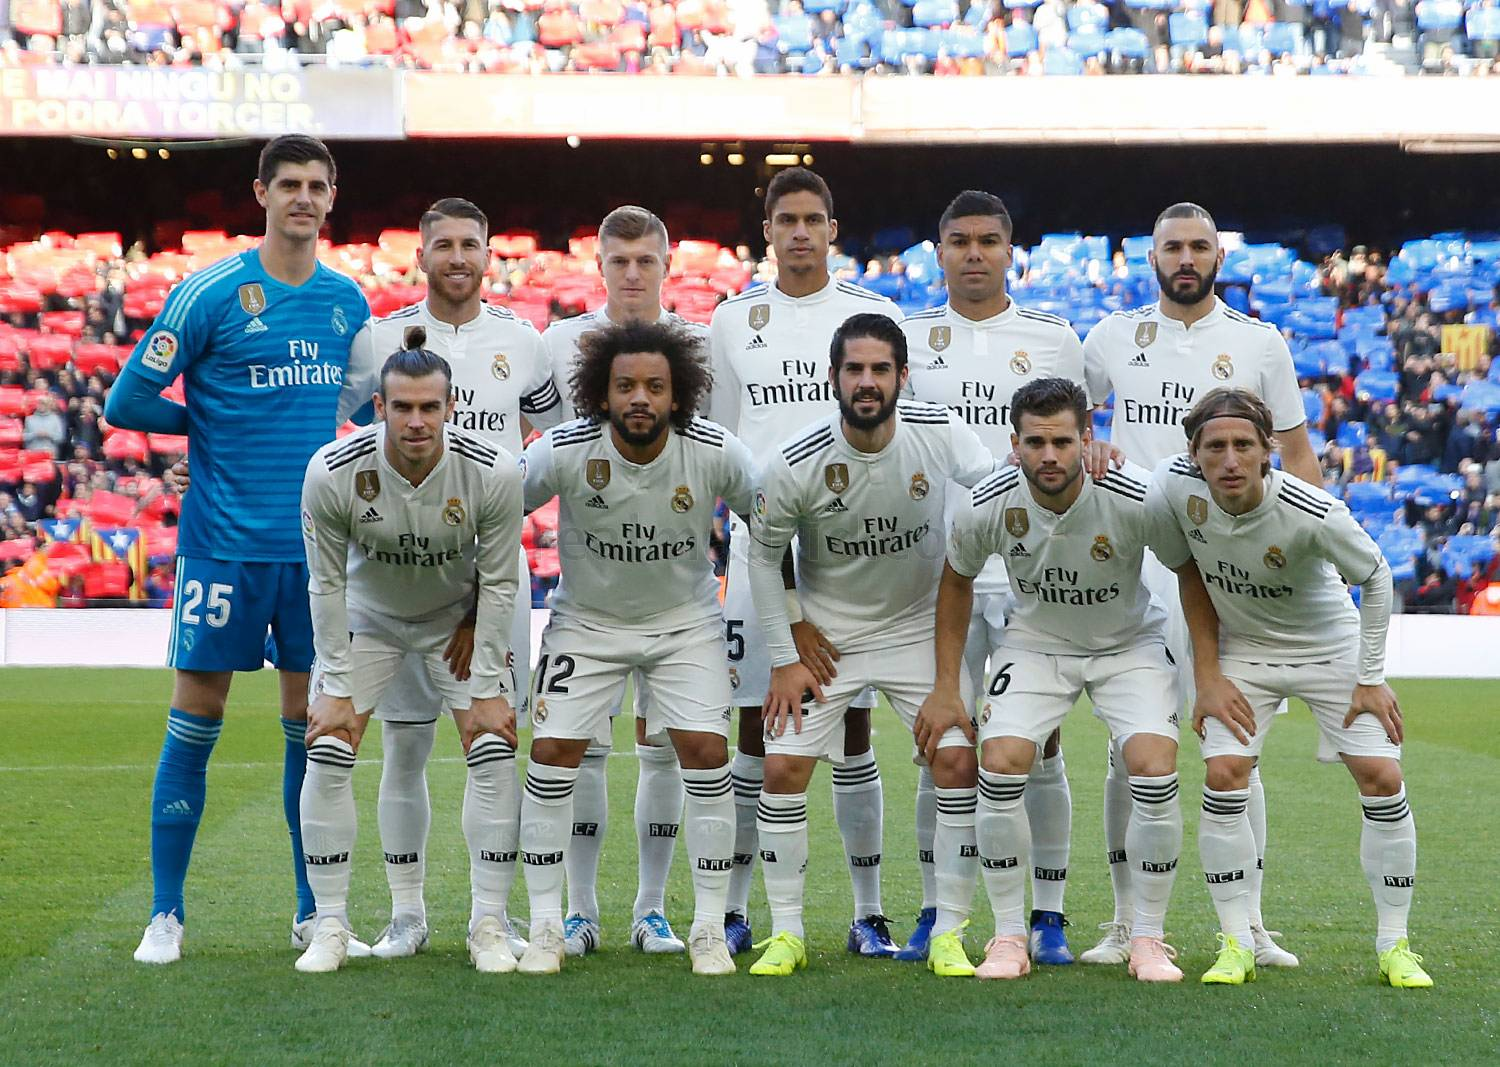 Real Madrid - Barcelona - Real Madrid - 28-10-2018